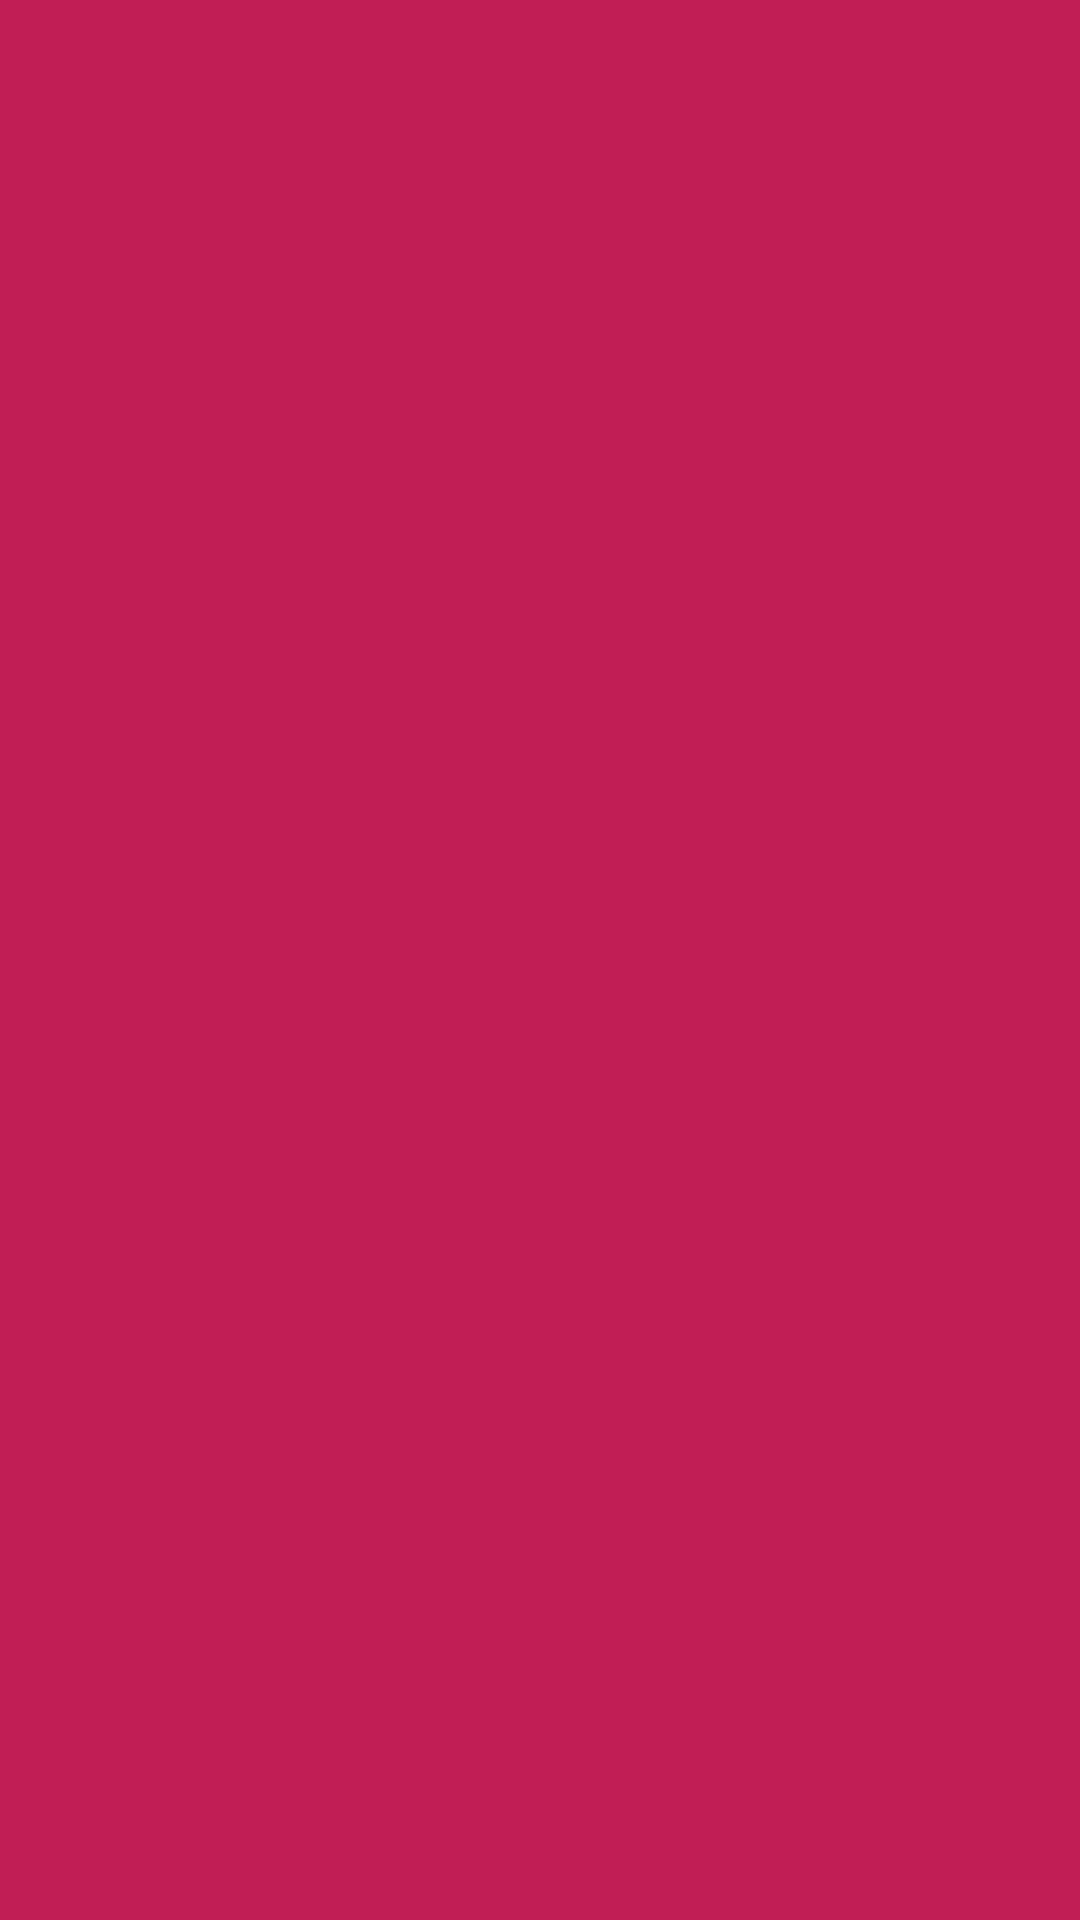 1080x1920 Rose Red Solid Color Background